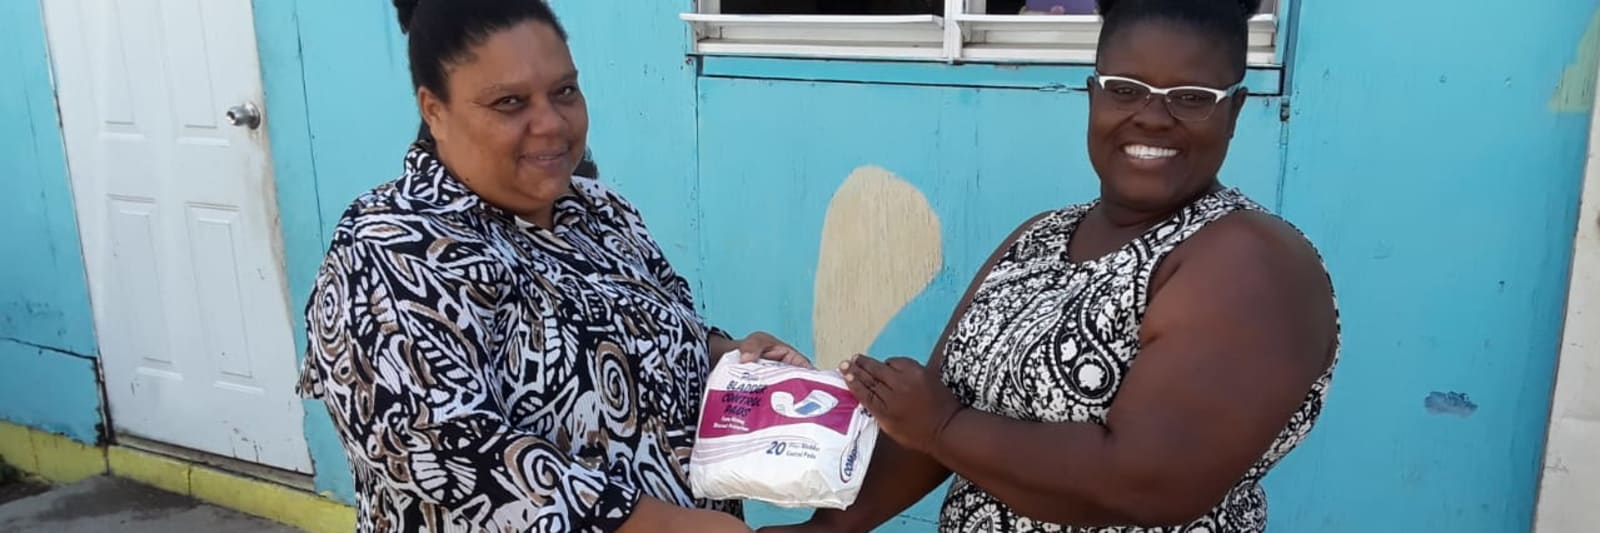 Hospice residents happily receive the donation of pads